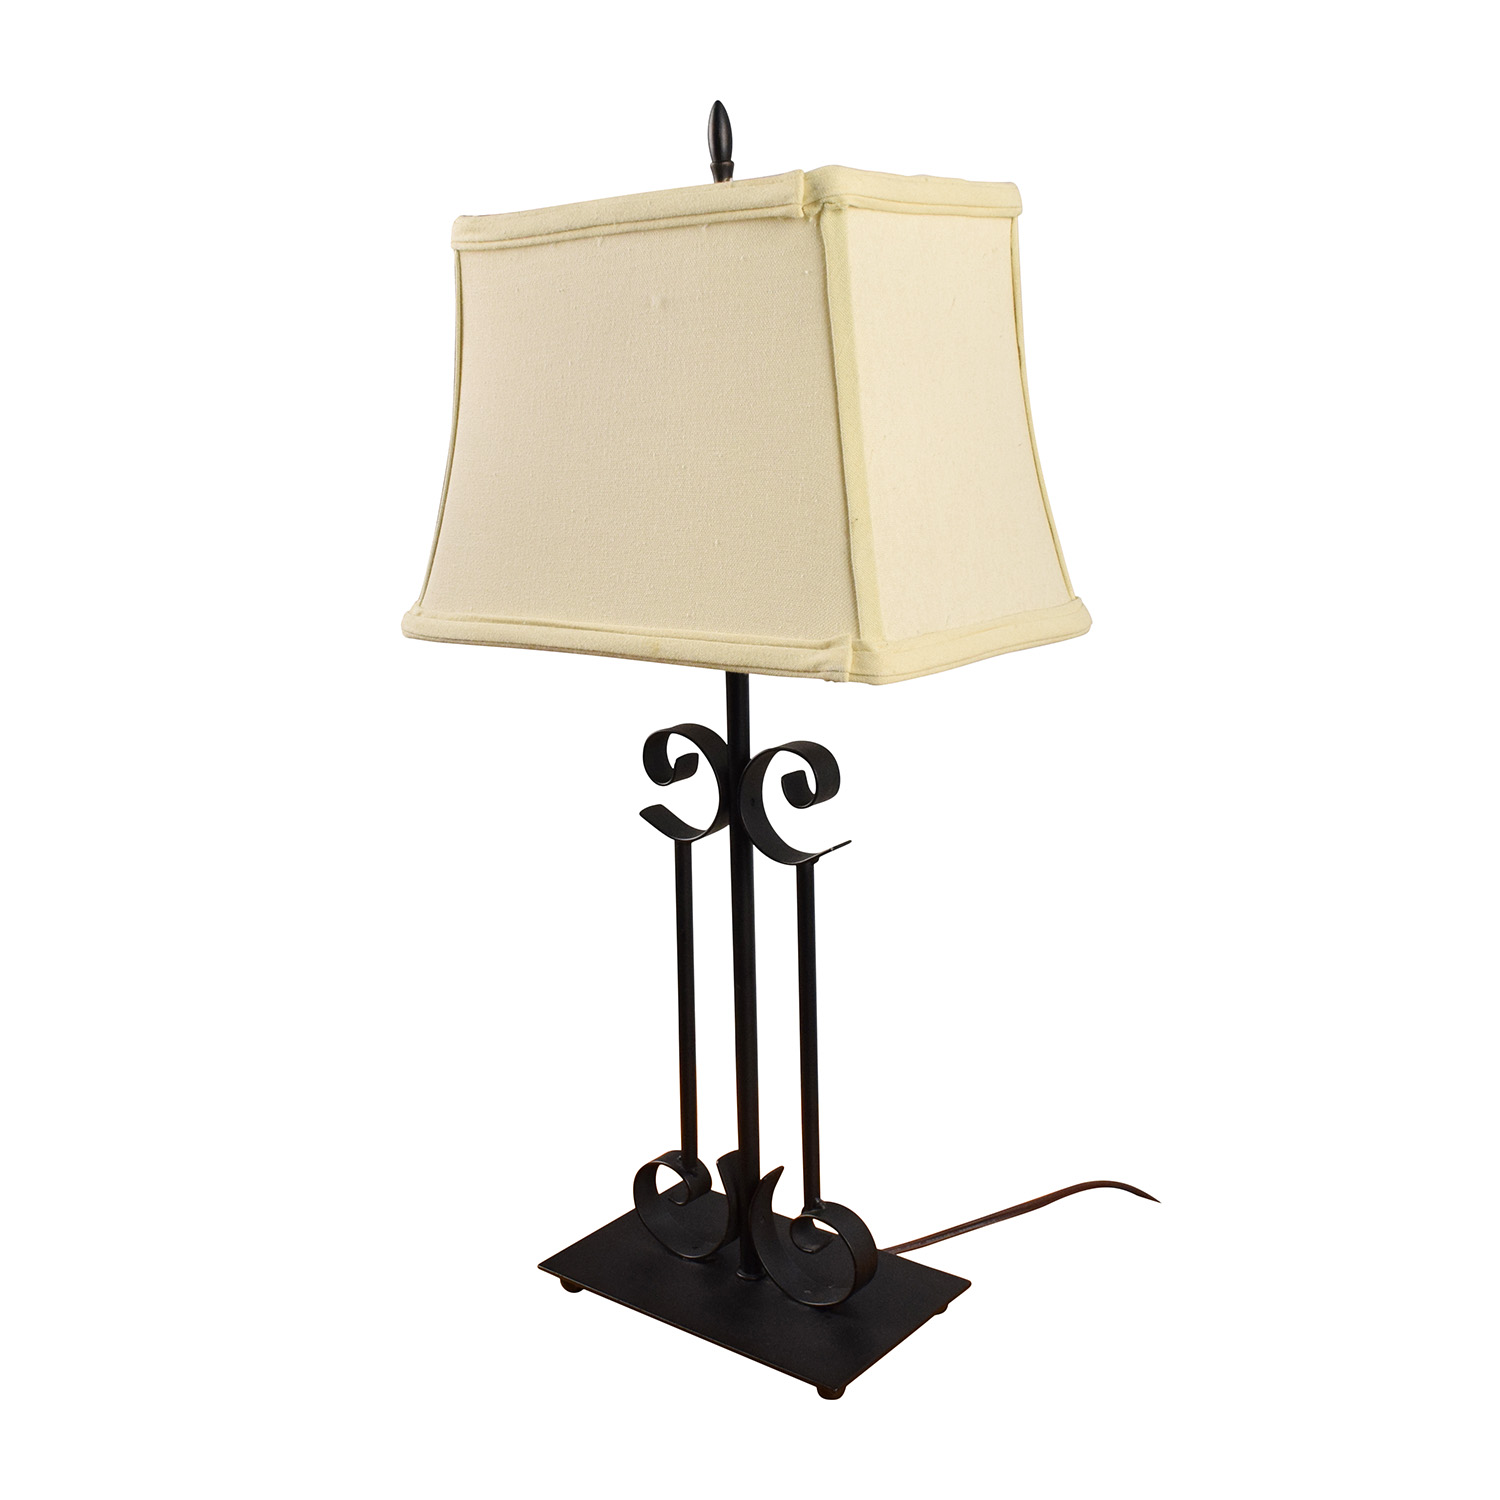 68 off unknown rectangular table lamp with black metal base decor shop rectangular table lamp with black metal base unknown lamps geotapseo Image collections